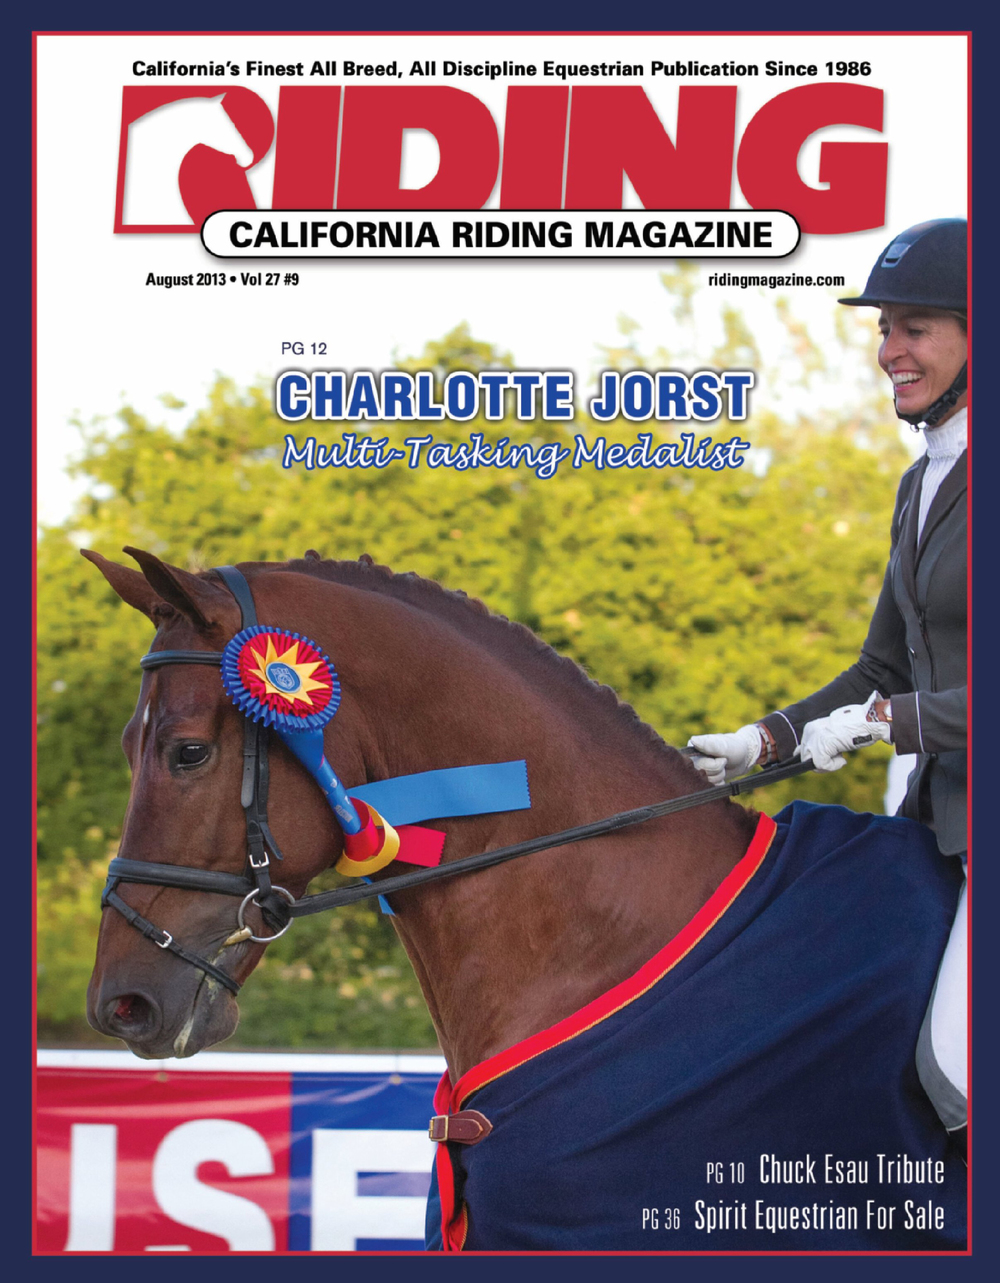 california-riding-mag-cover.jpg